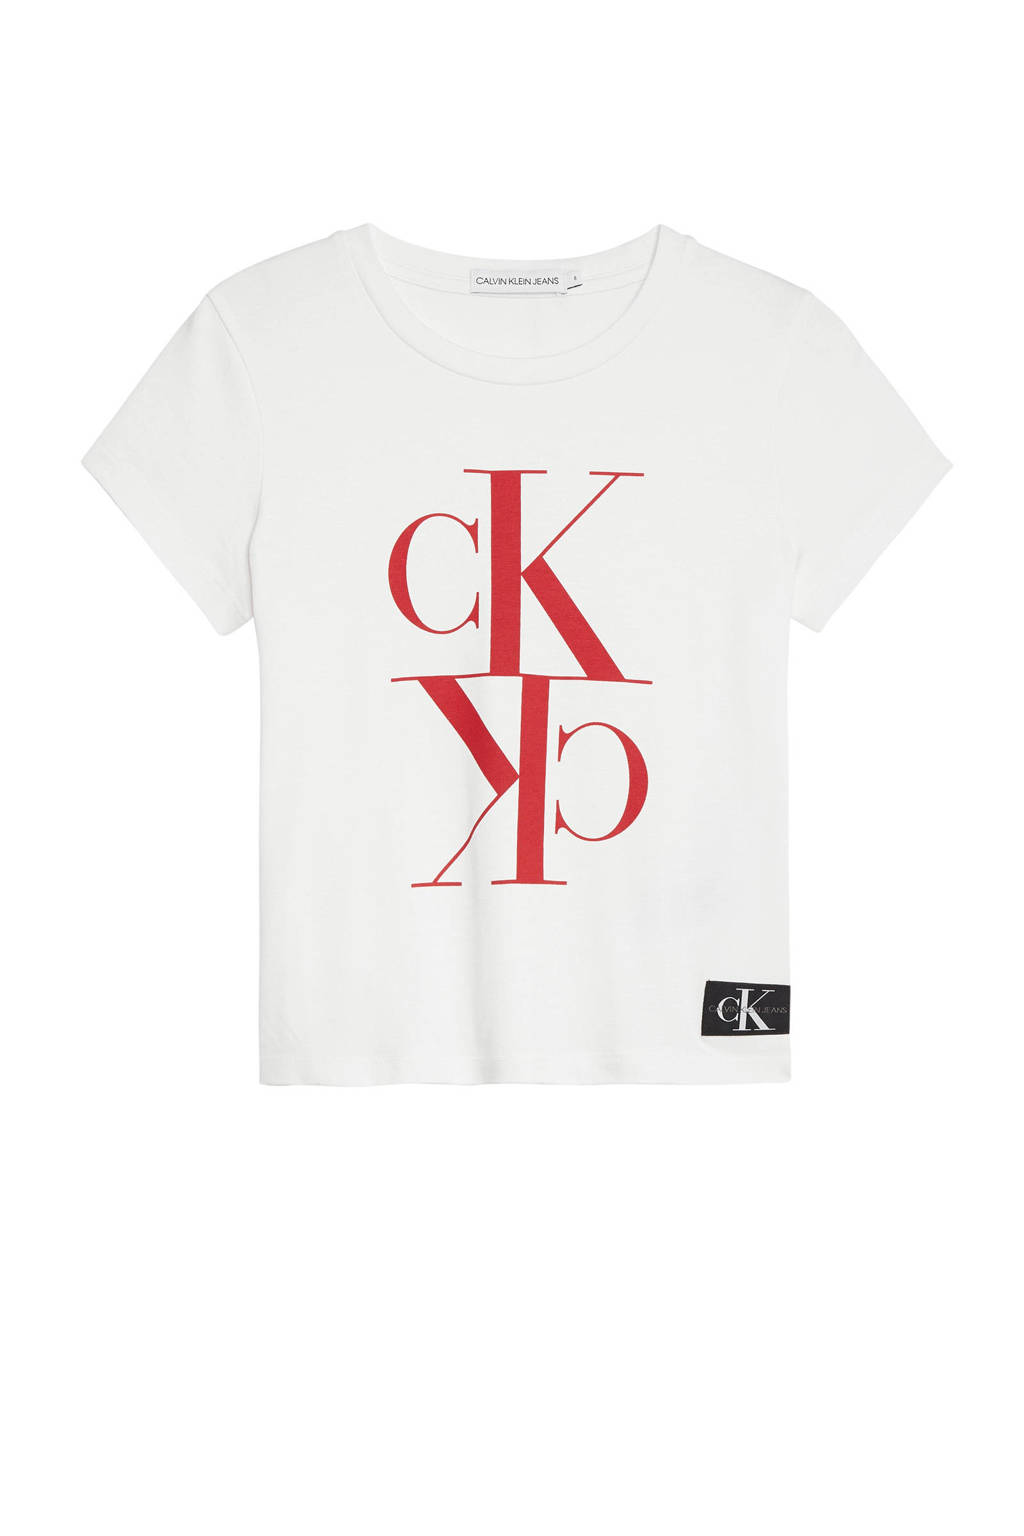 CALVIN KLEIN JEANS cropped T-shirt wit, Wit